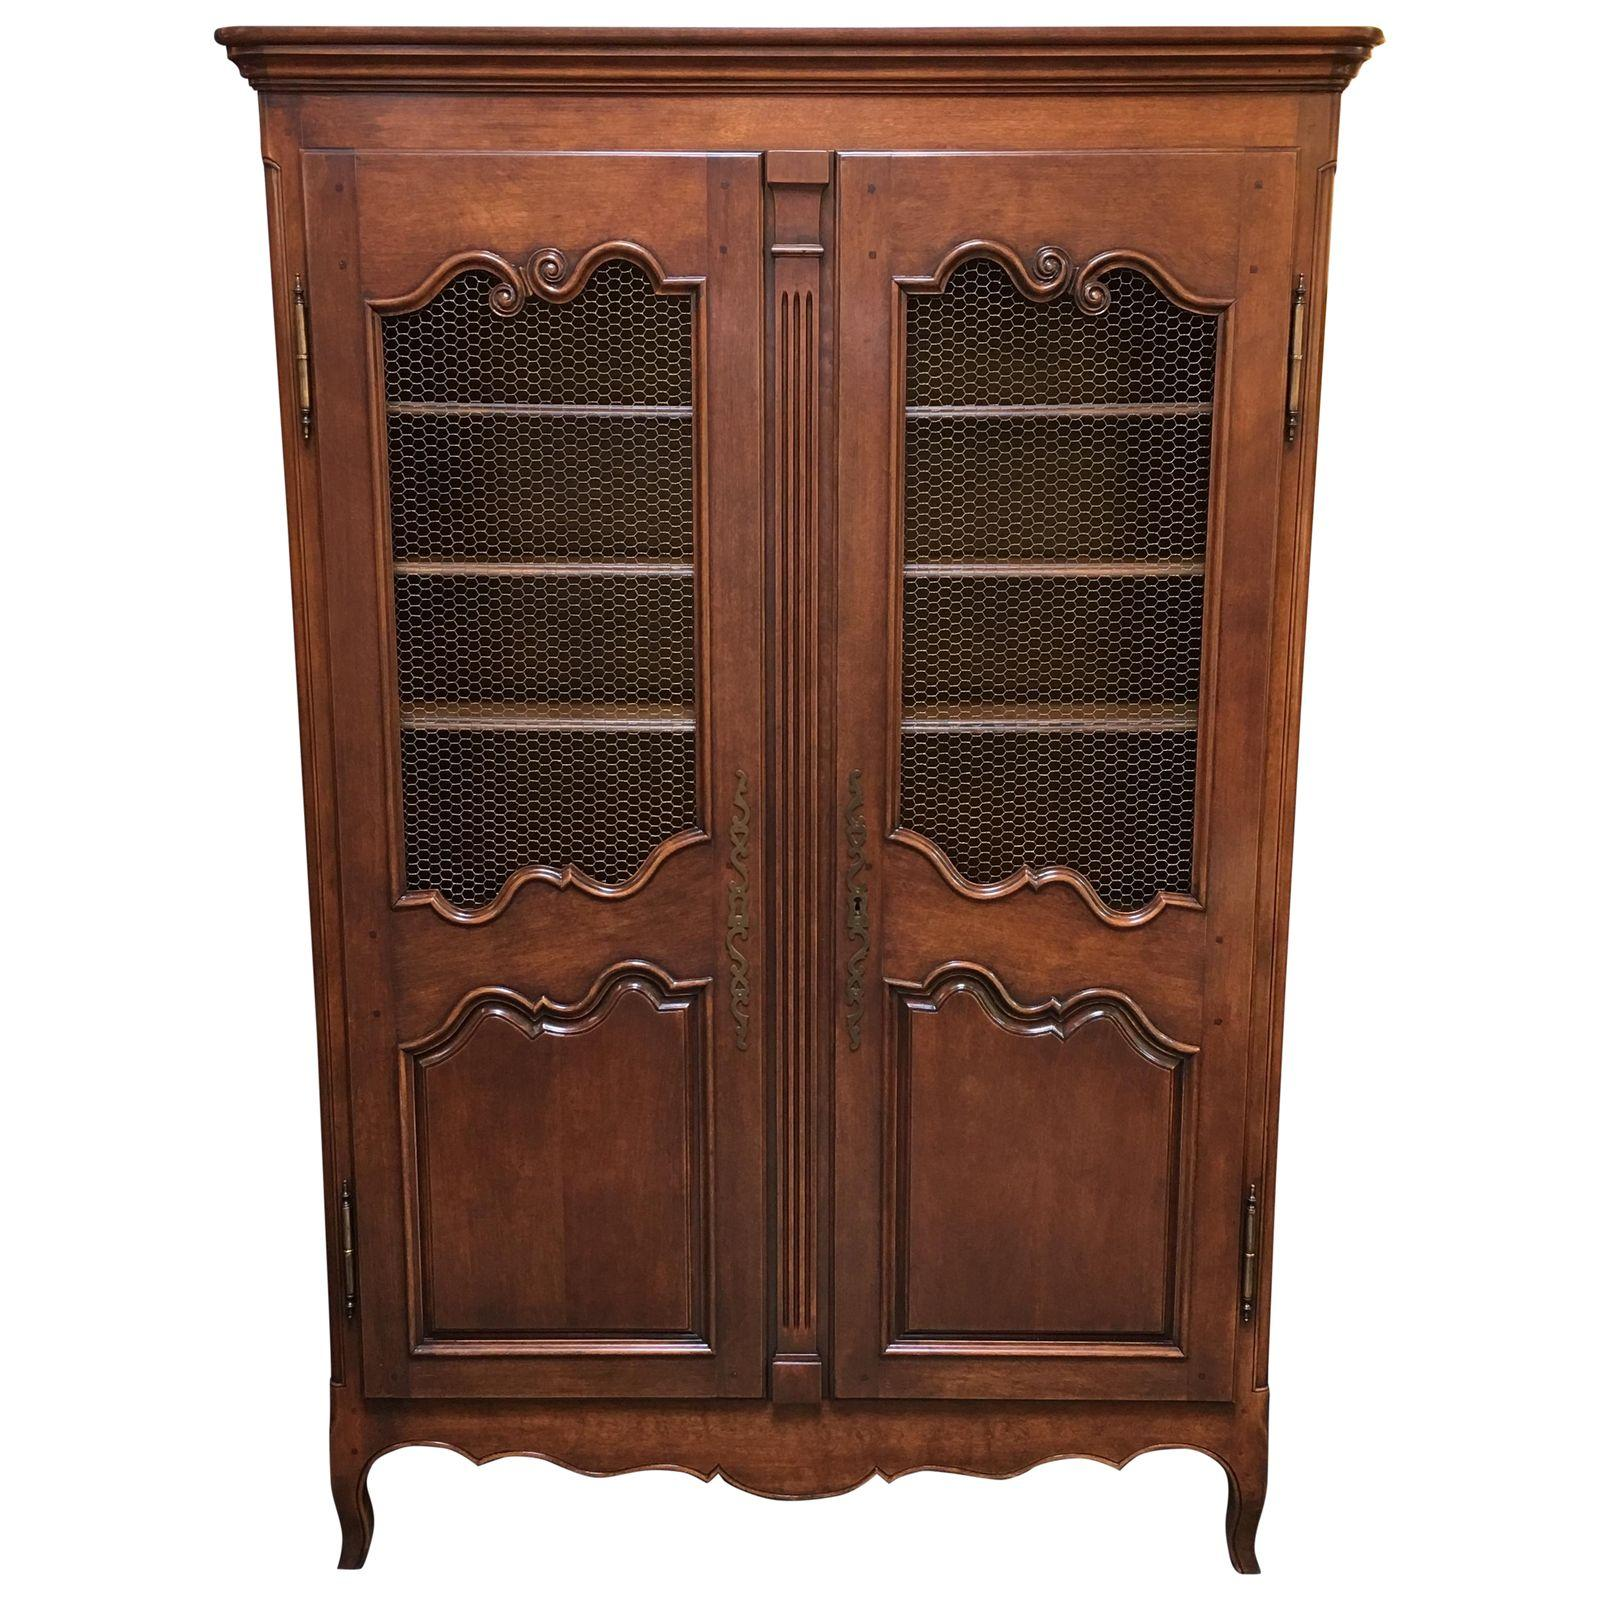 1930s french style armoire design plus gallery. Black Bedroom Furniture Sets. Home Design Ideas